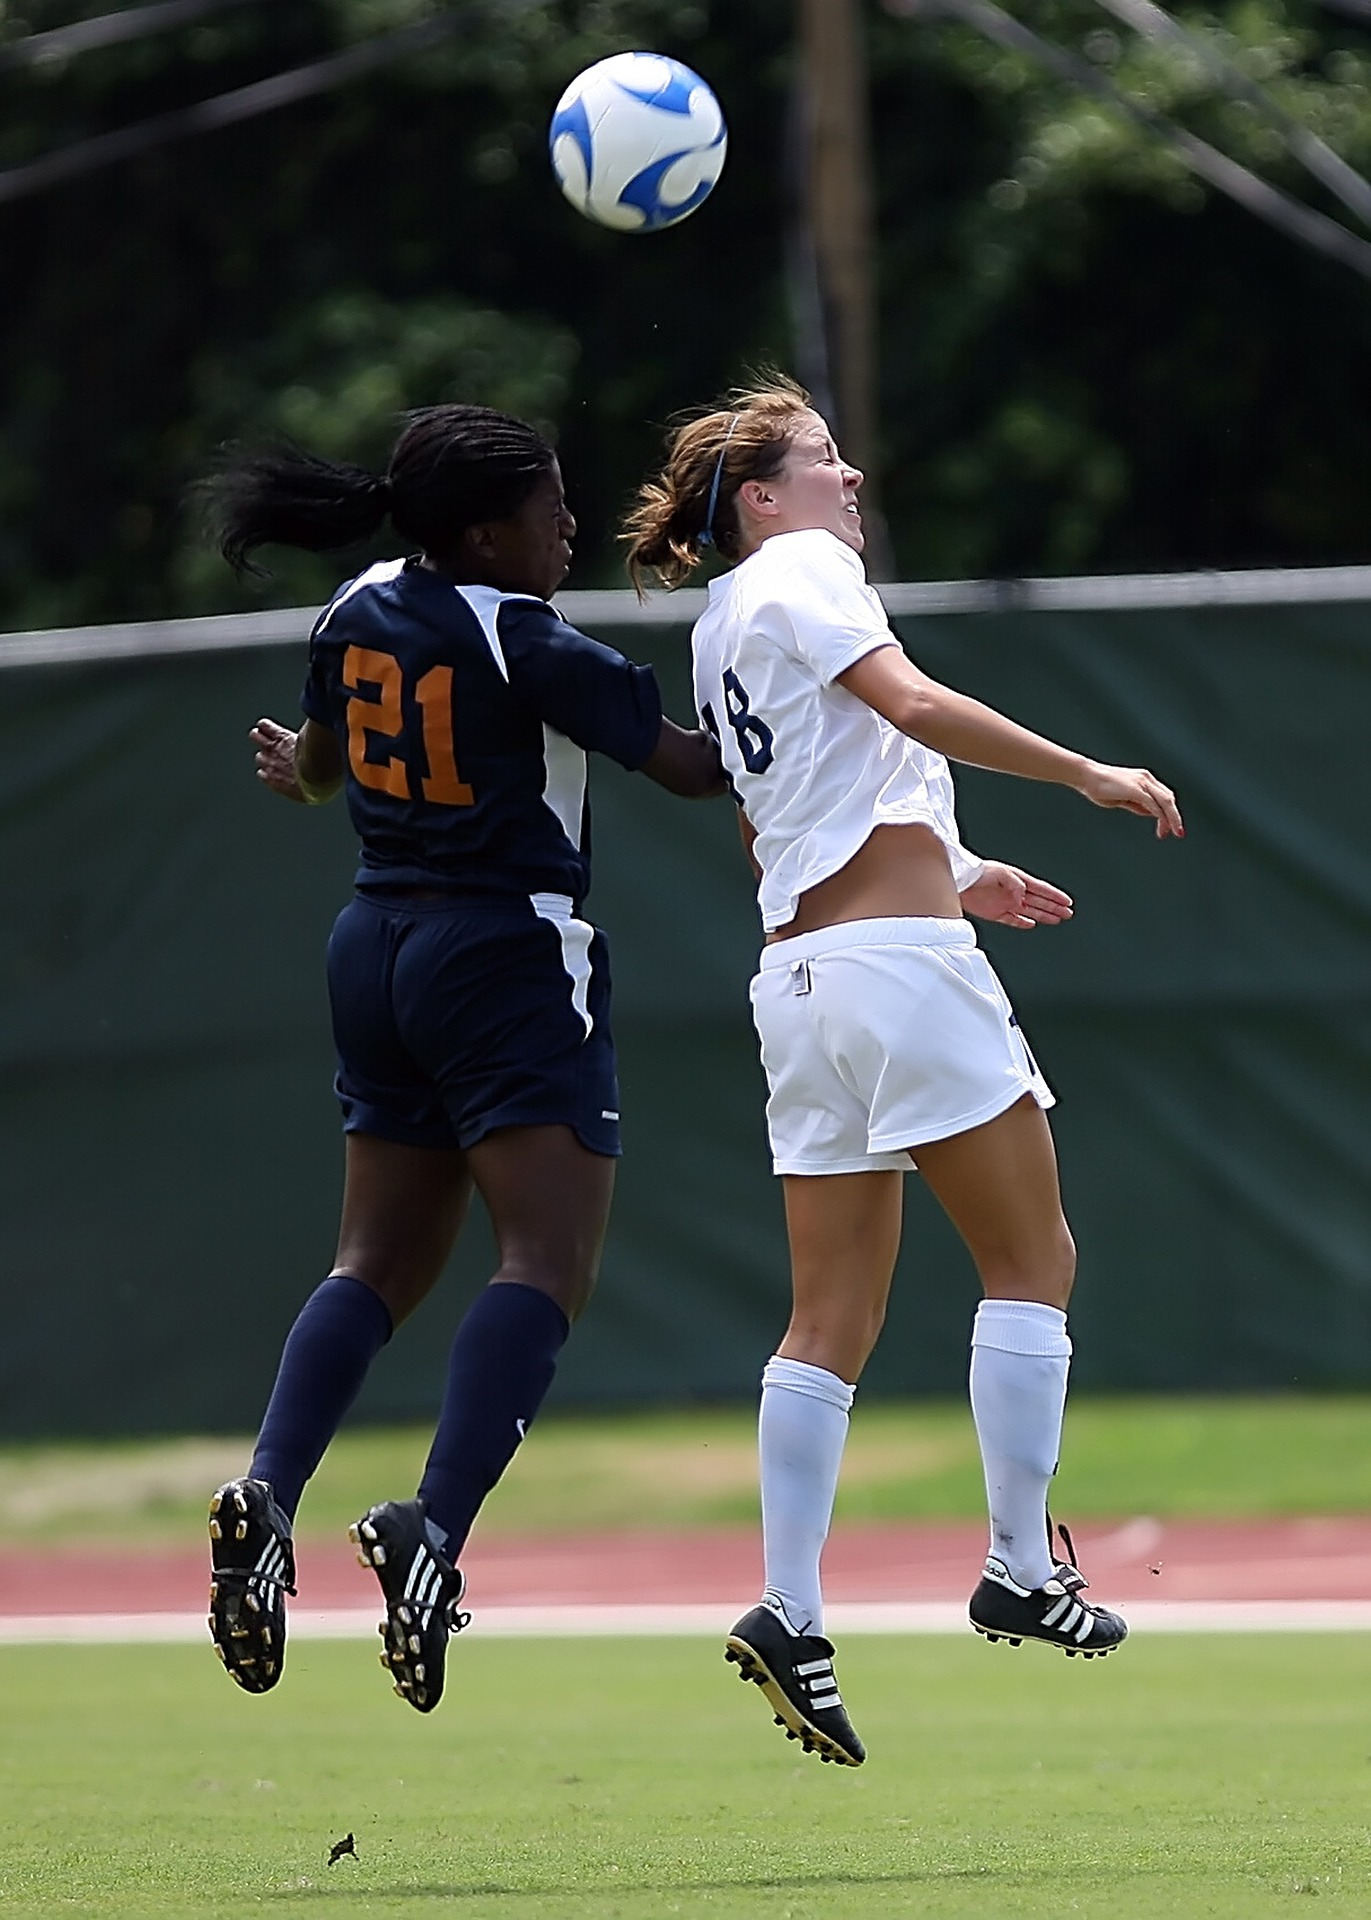 Two female soccer players in action.